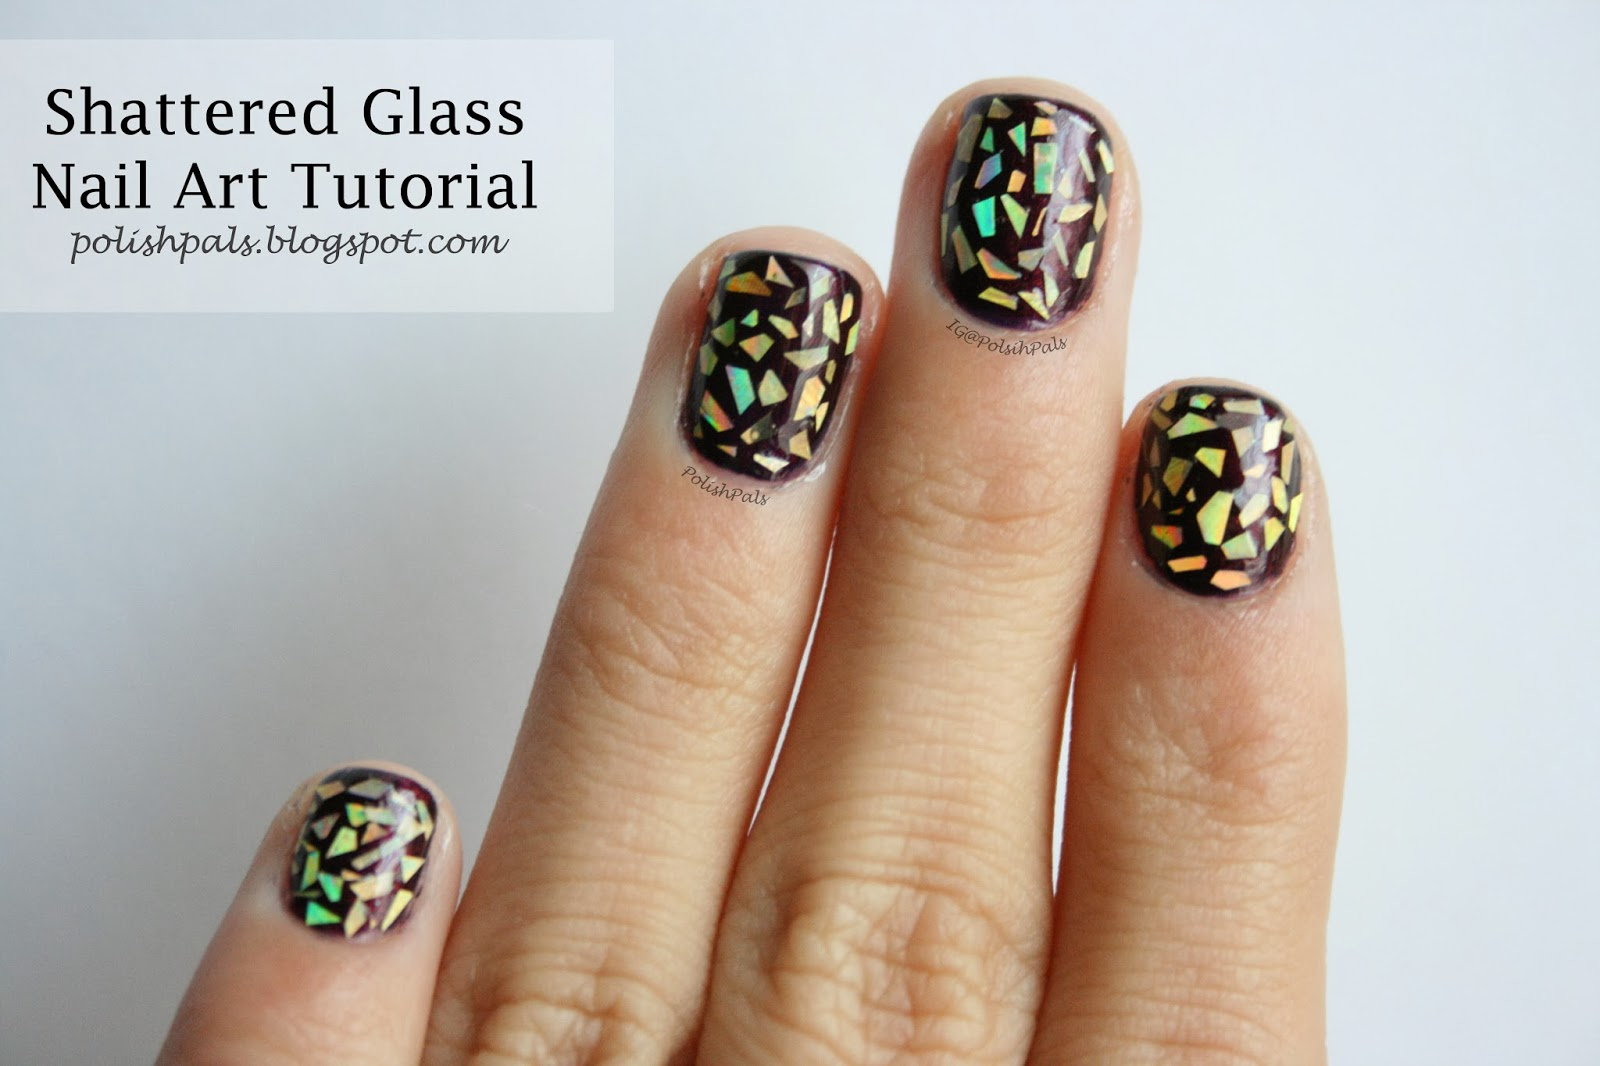 http://polishpals.blogspot.com/2013/12/shattered-glass-nail-tutorial.html